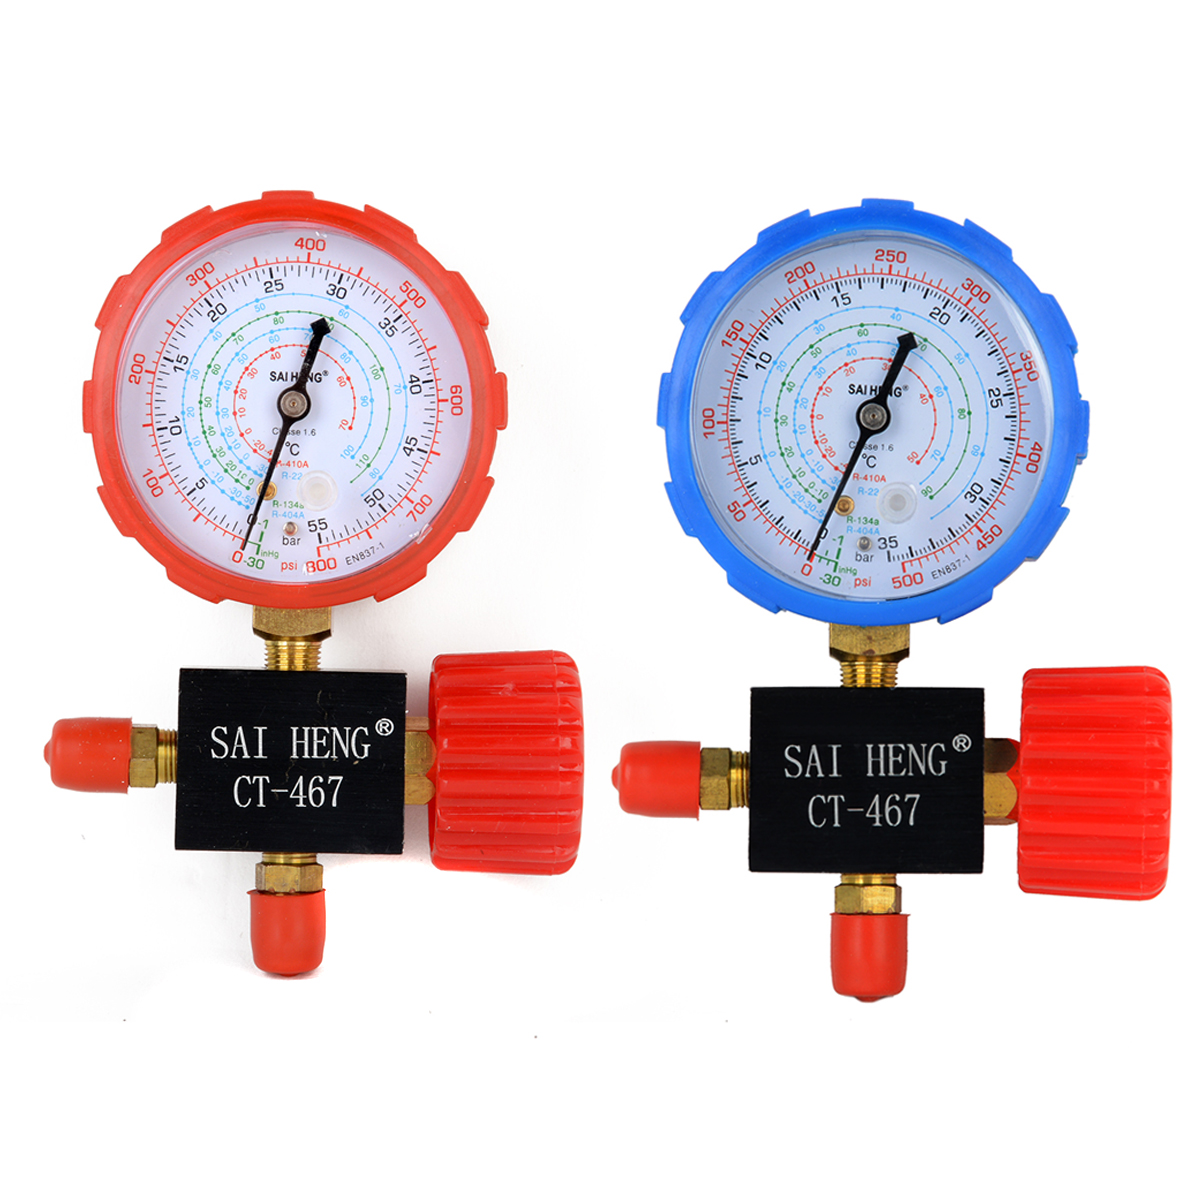 1pc/2pcs Good Air Conditioning Manifold Gauge High/Low Pressure R134a R404a R22 R410a Refrigerant Manometer With Valve Mayitr 1pcs high quality little bear p5 stereo vacuum tube preamplifier audio hifi buffer pre amp diy new